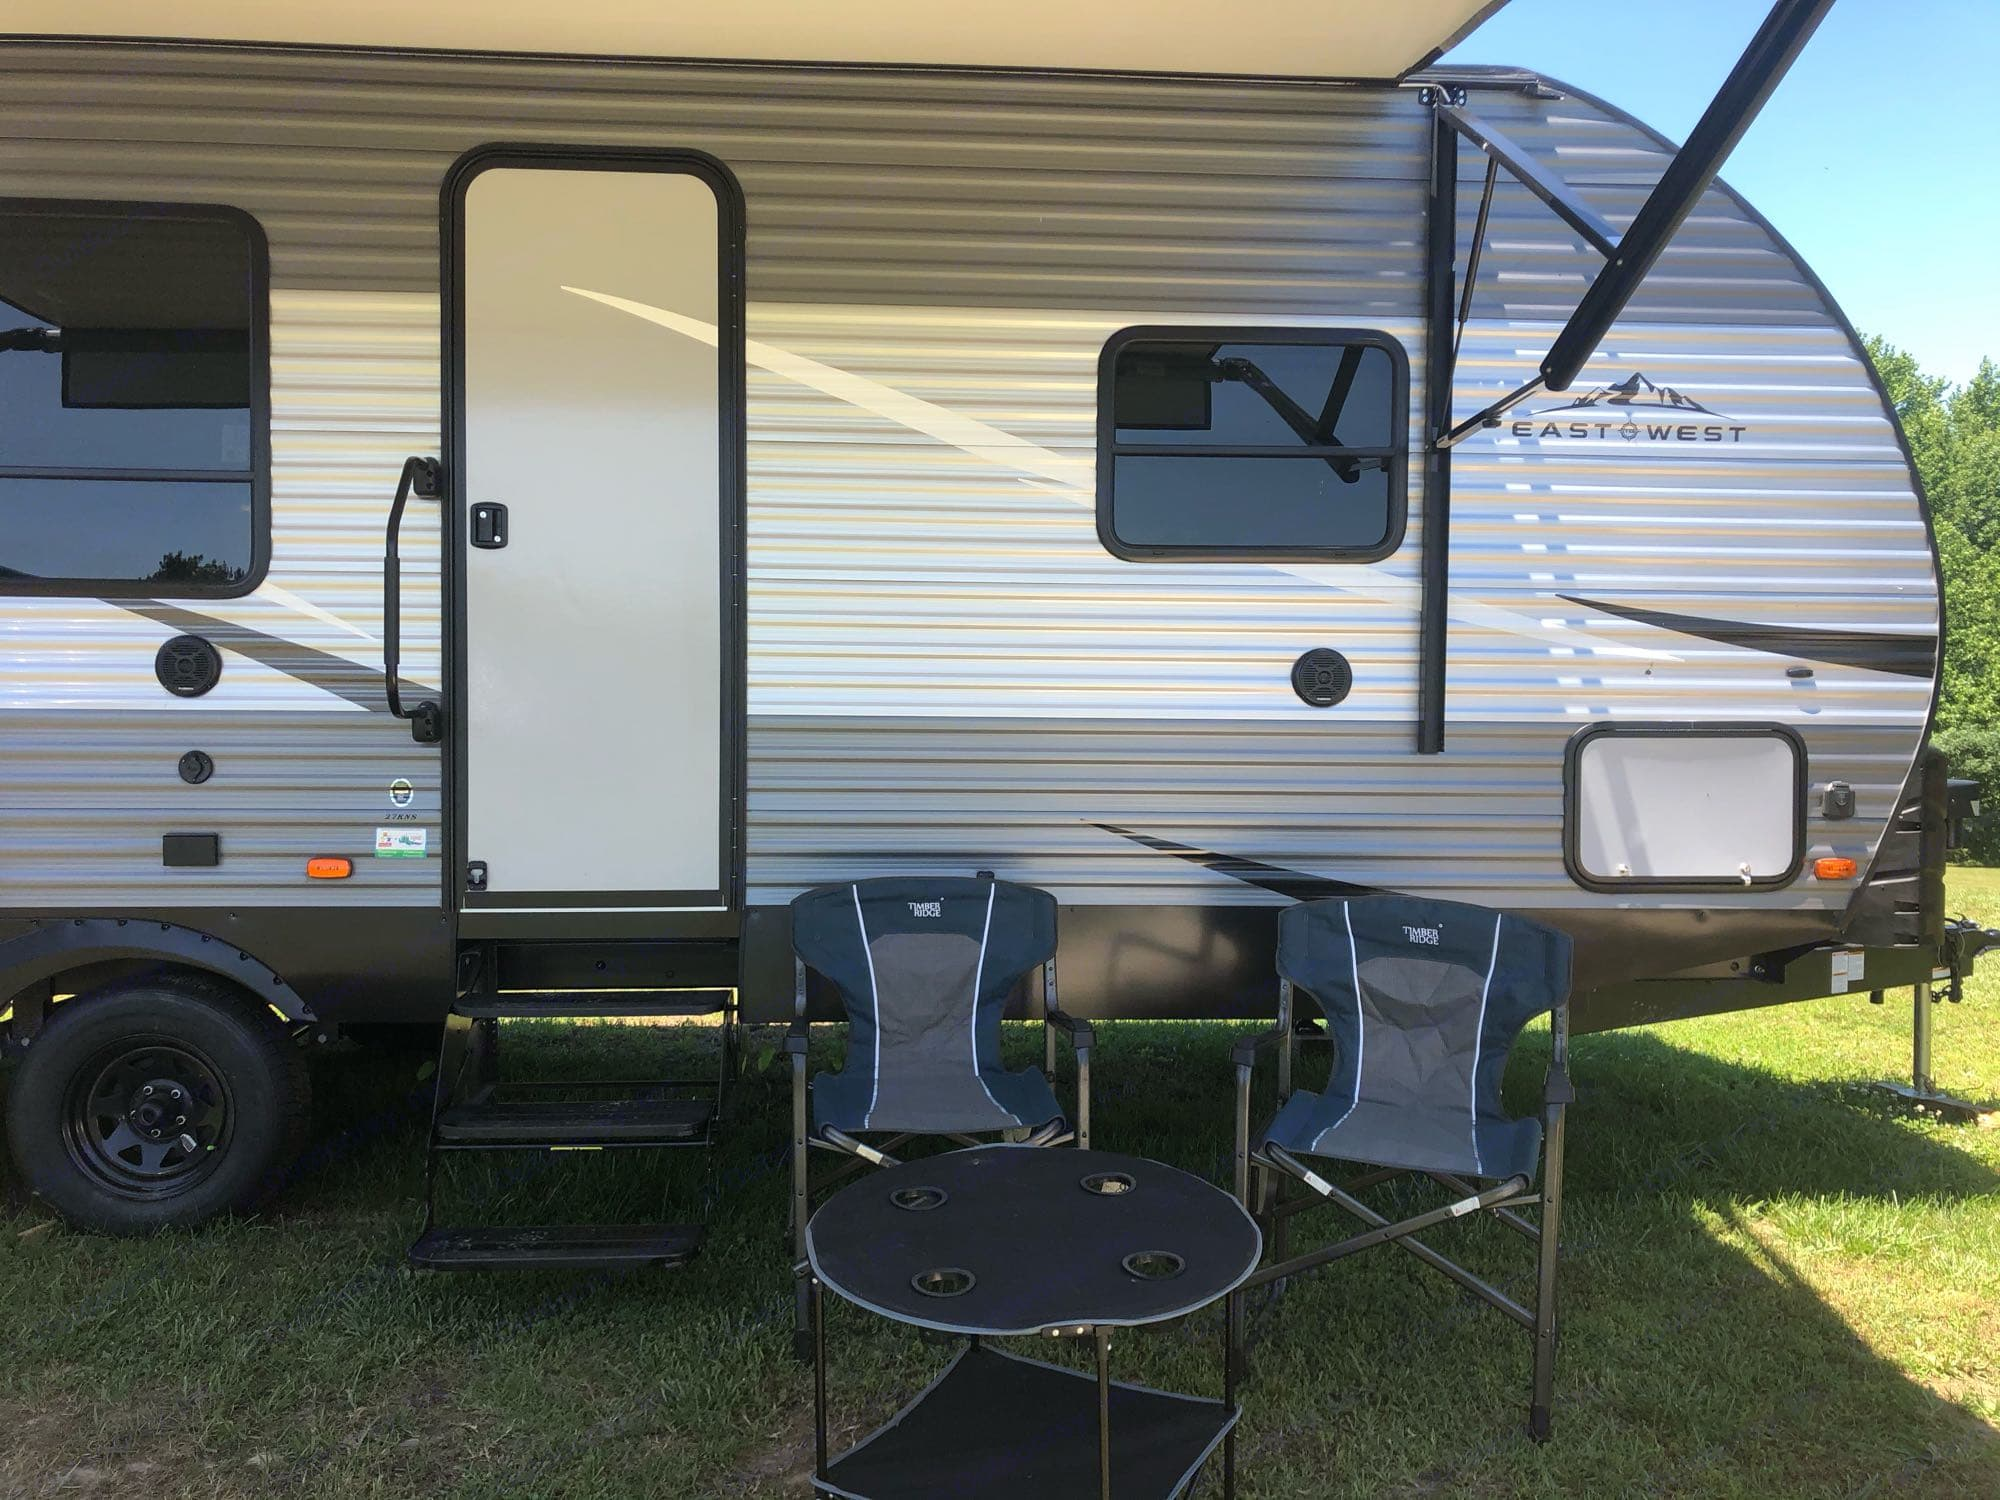 Chairs/Awnings/Table. East West - Silver Lake Silver Lake 27KNS 2020